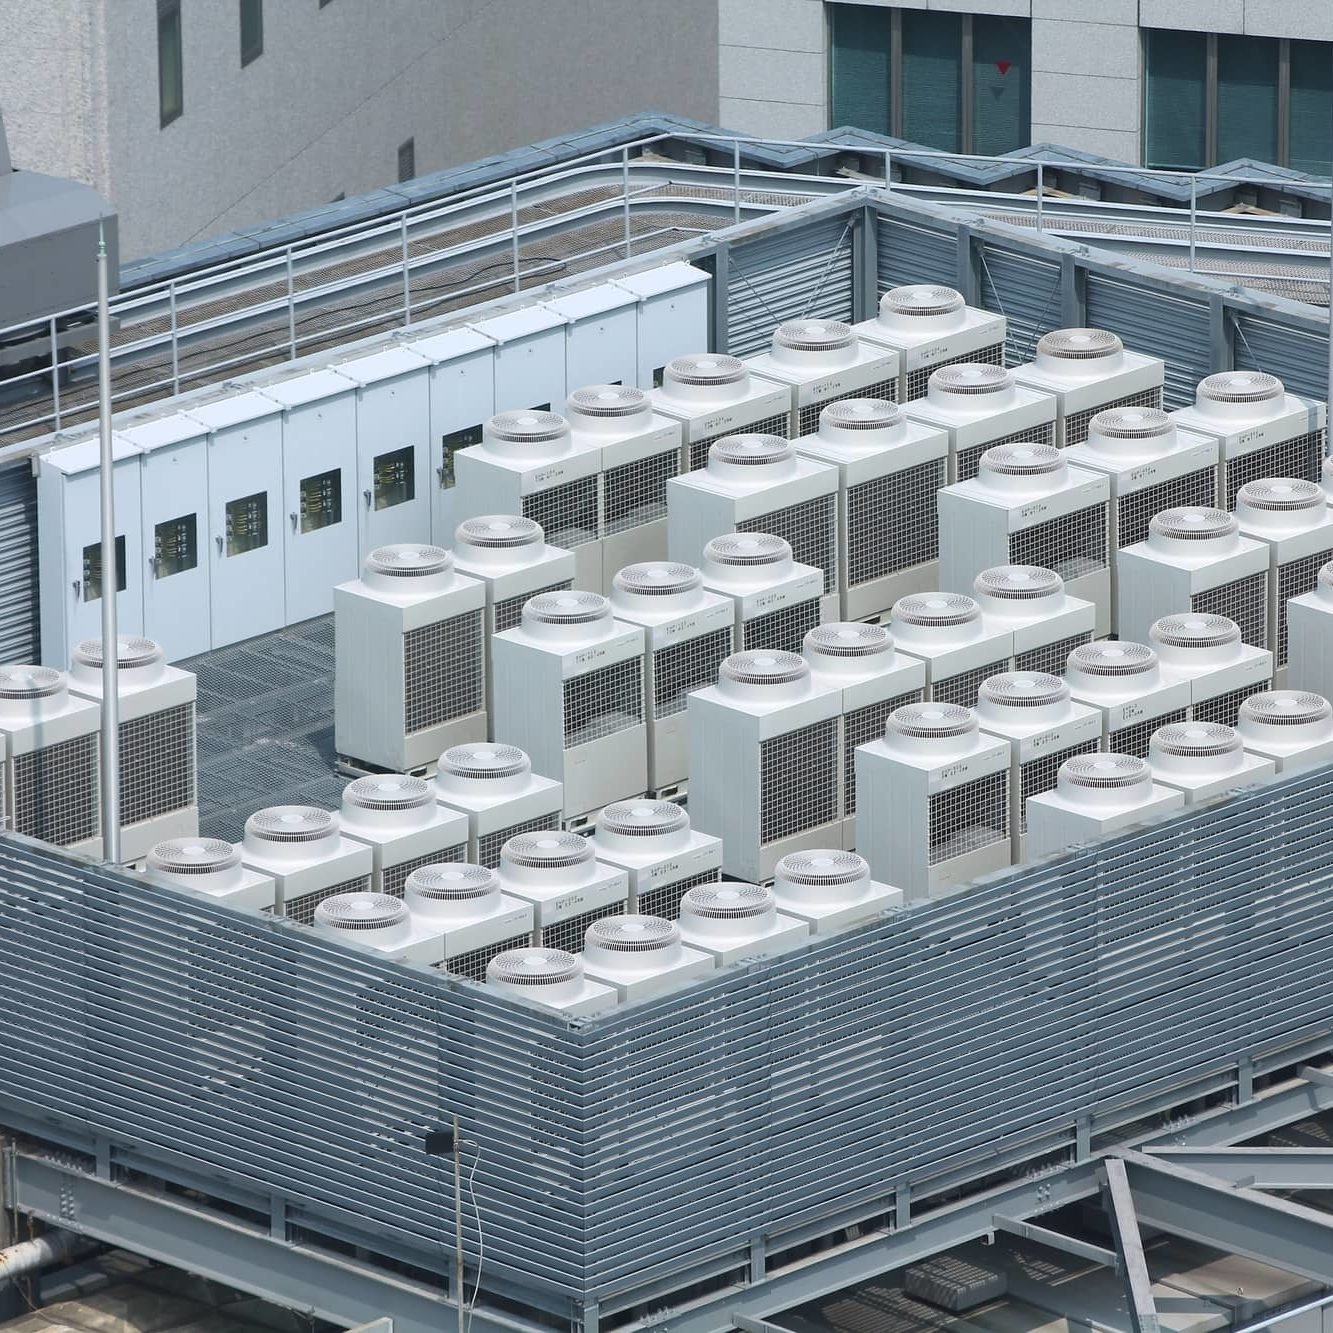 Exhaust vents of industrial air conditioning and ventilation units. Skyscraper roof top in Kobe, Japan.